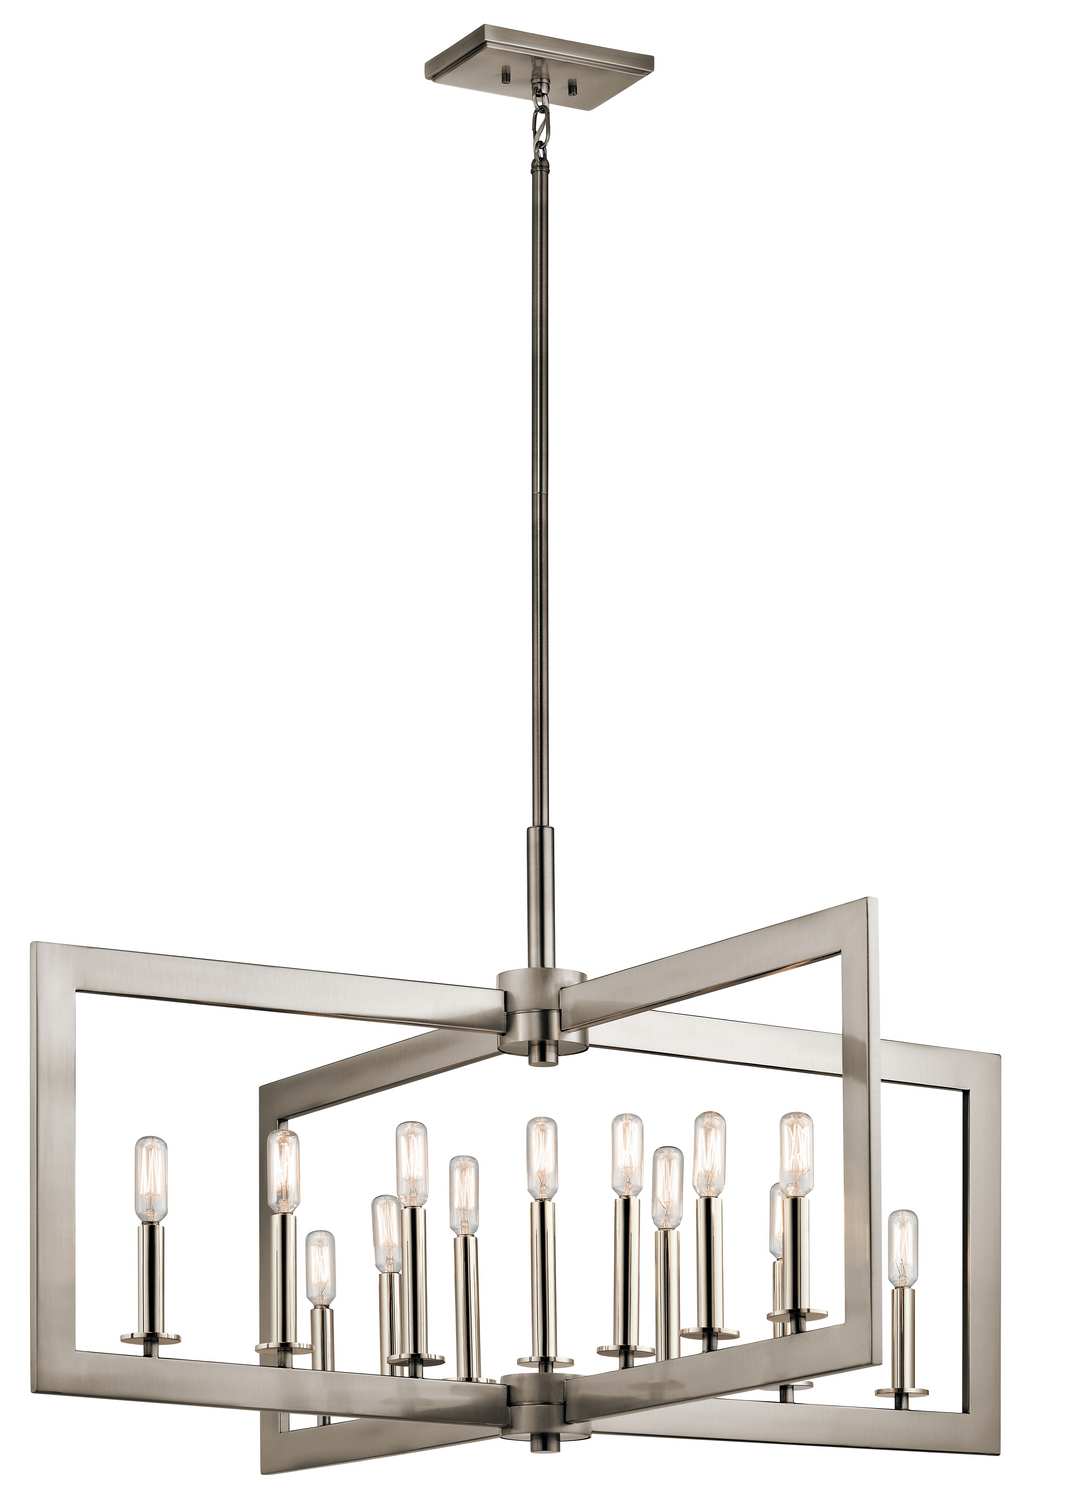 13 Light Linear Chandelier from the Cullen collection by Kichler 43901CLP